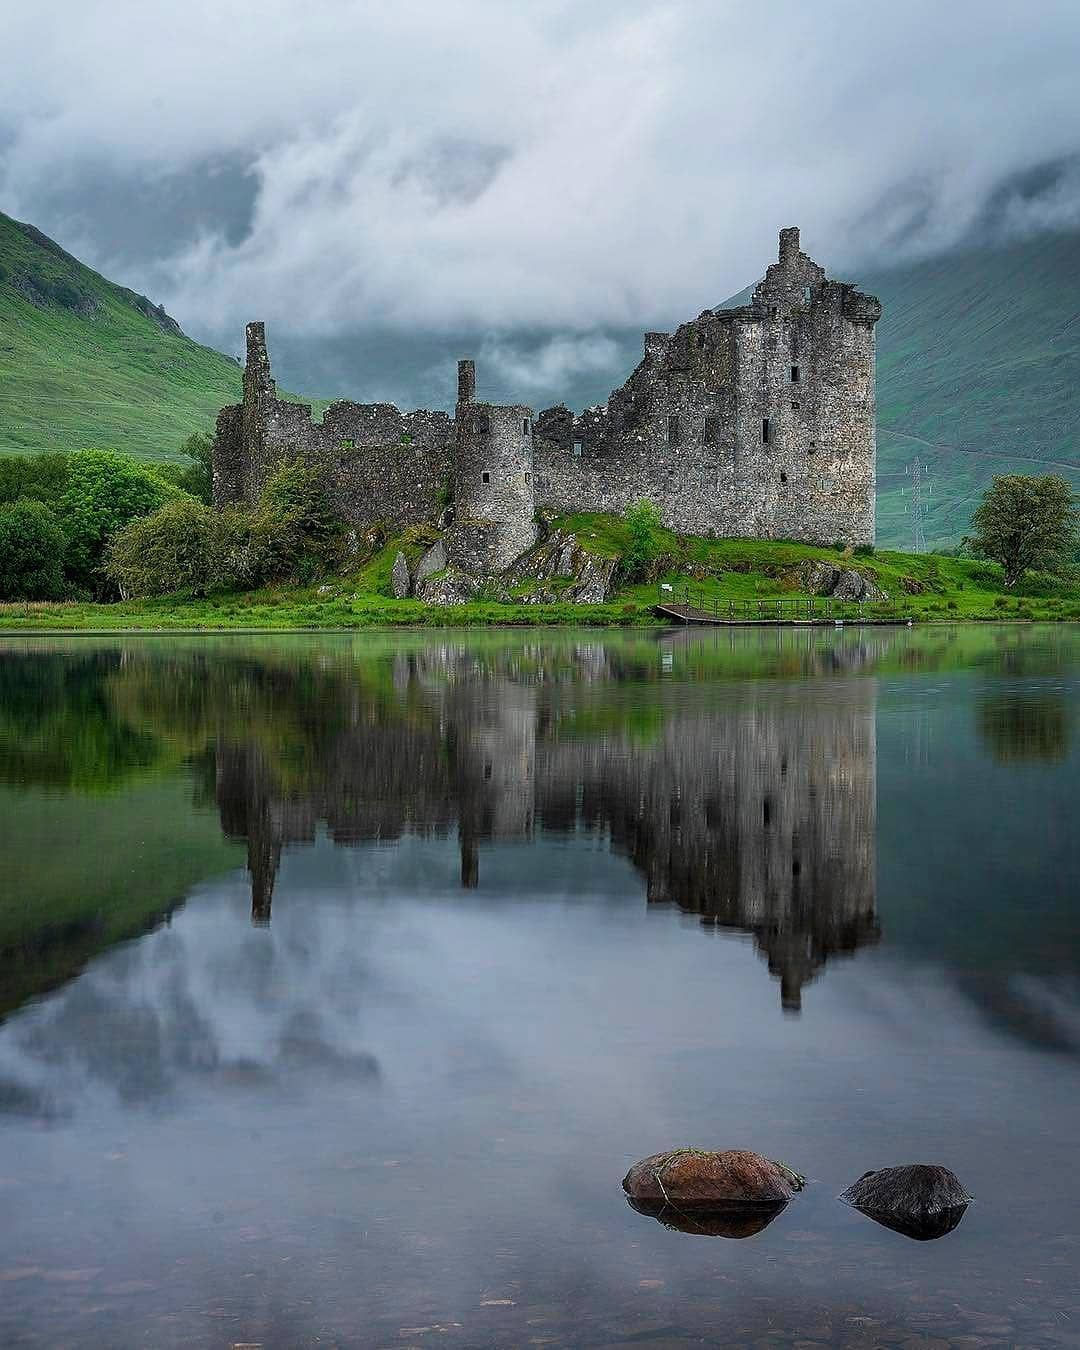 Anyone Wish To Visit This Castle? Follow Us